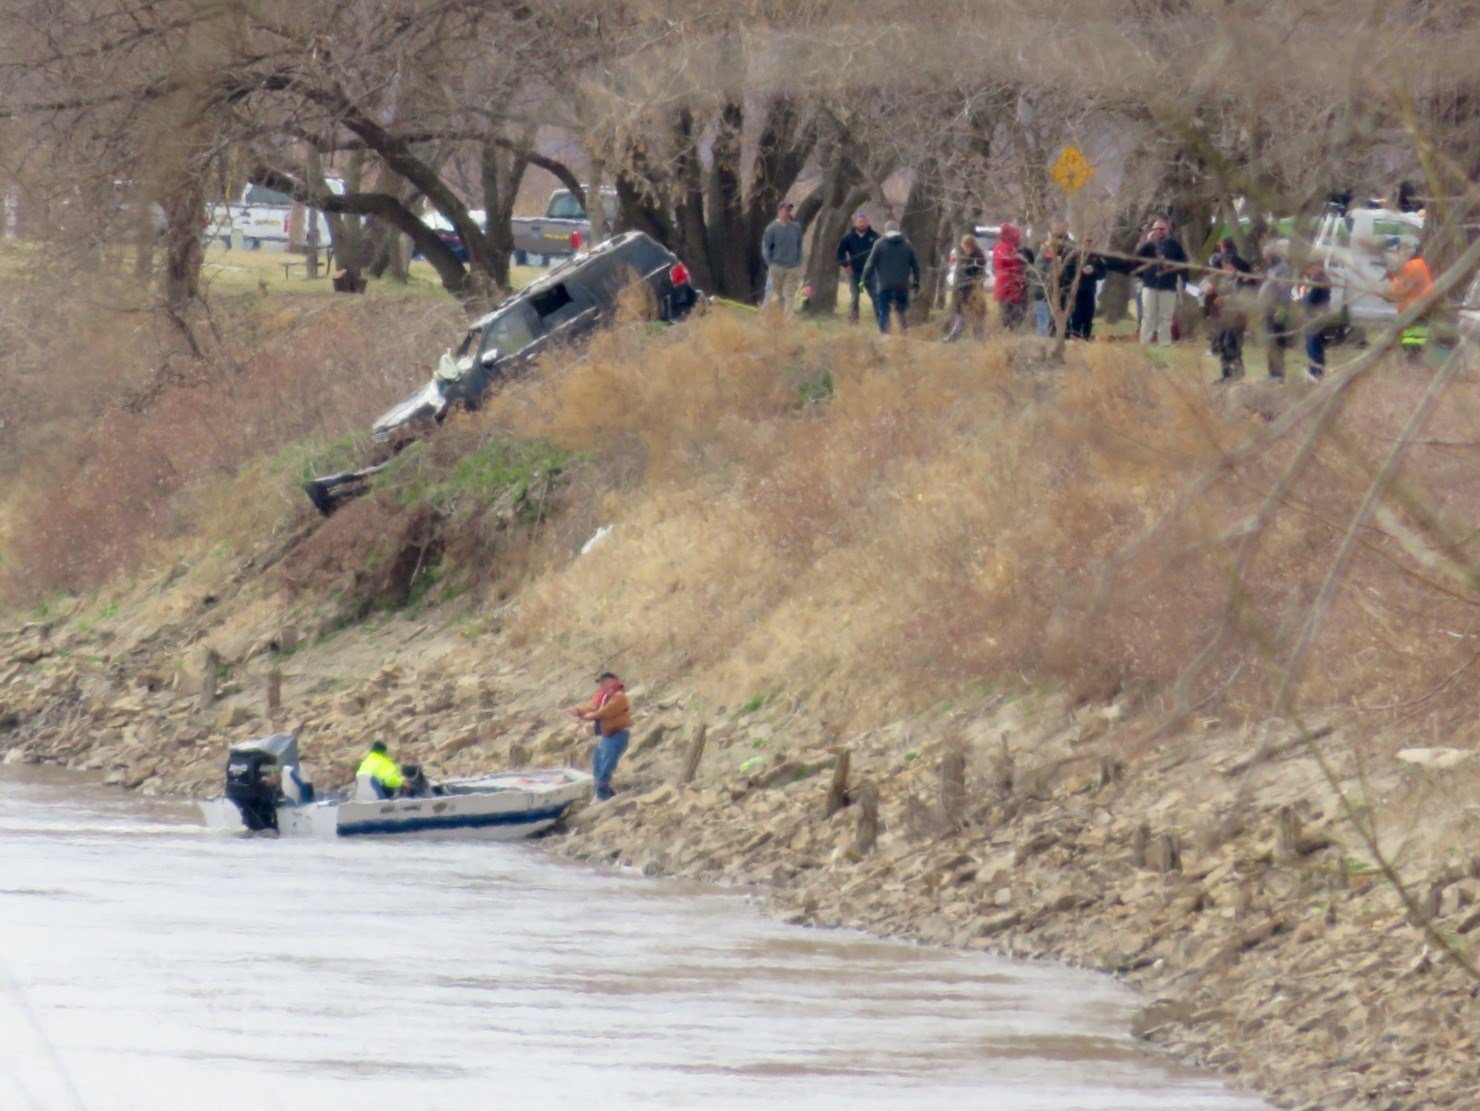 """The SUV pulled from the water is """"not believed to be related any KCPD investigation,"""" police said. (KCTV)"""